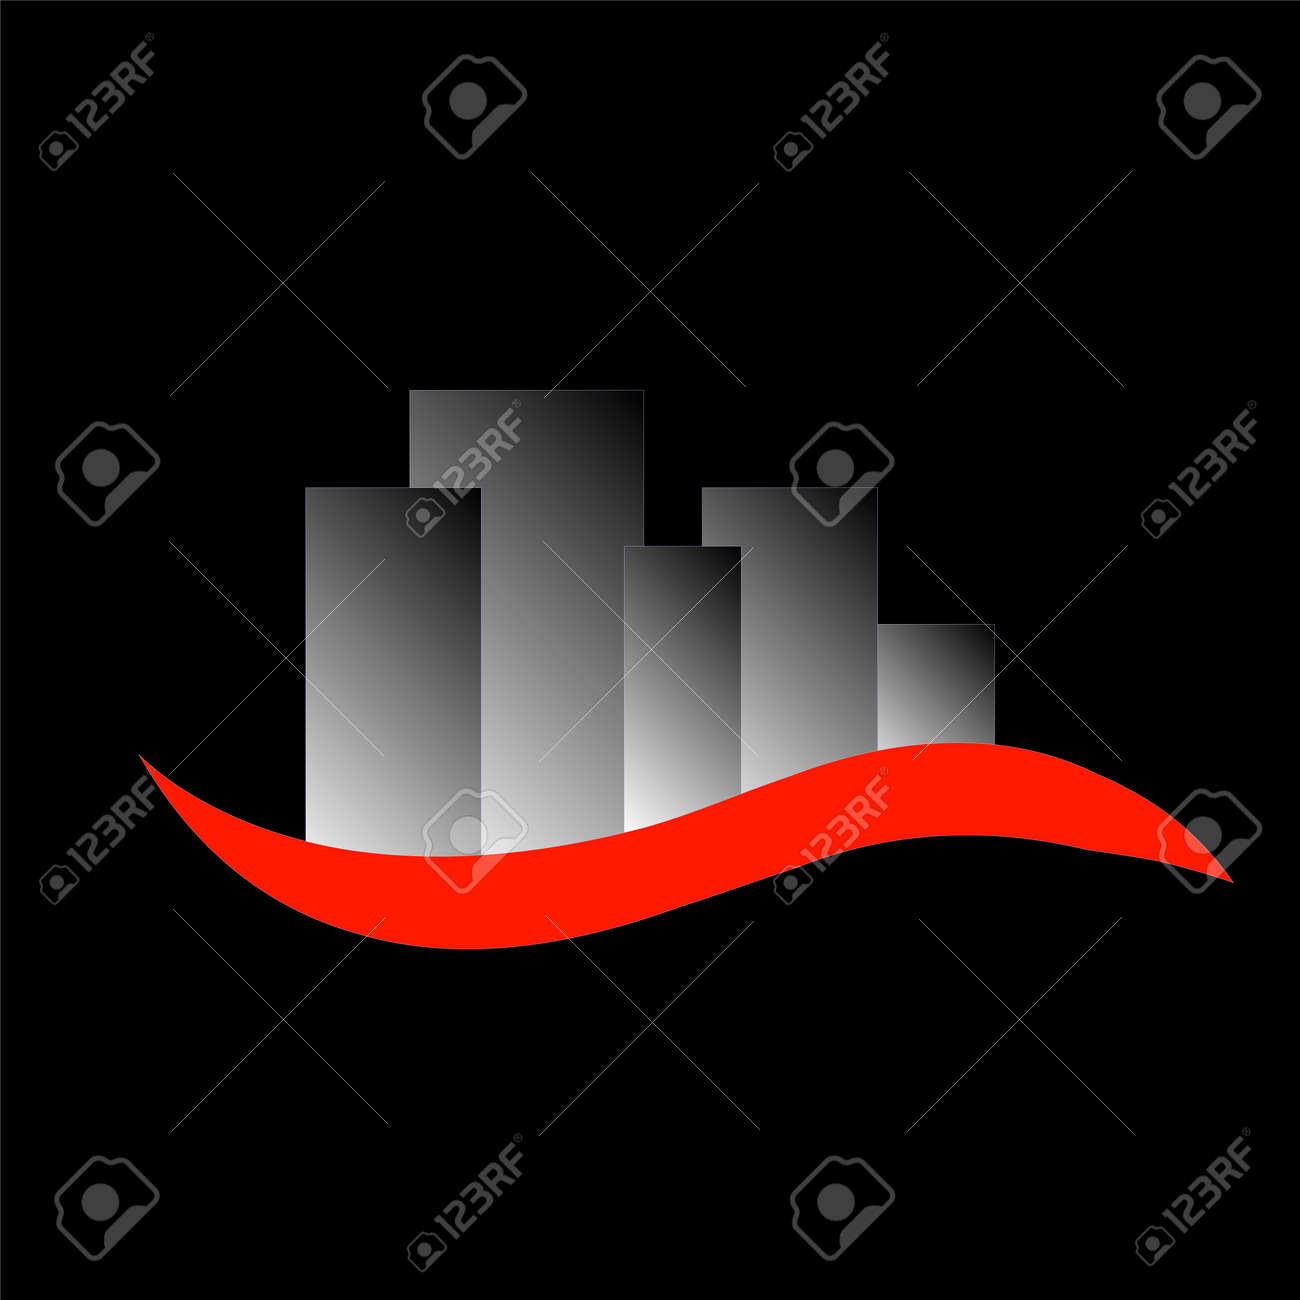 Abstract Skyscrapers Logo For Real Estate Or Architecture Firm Stock Vector